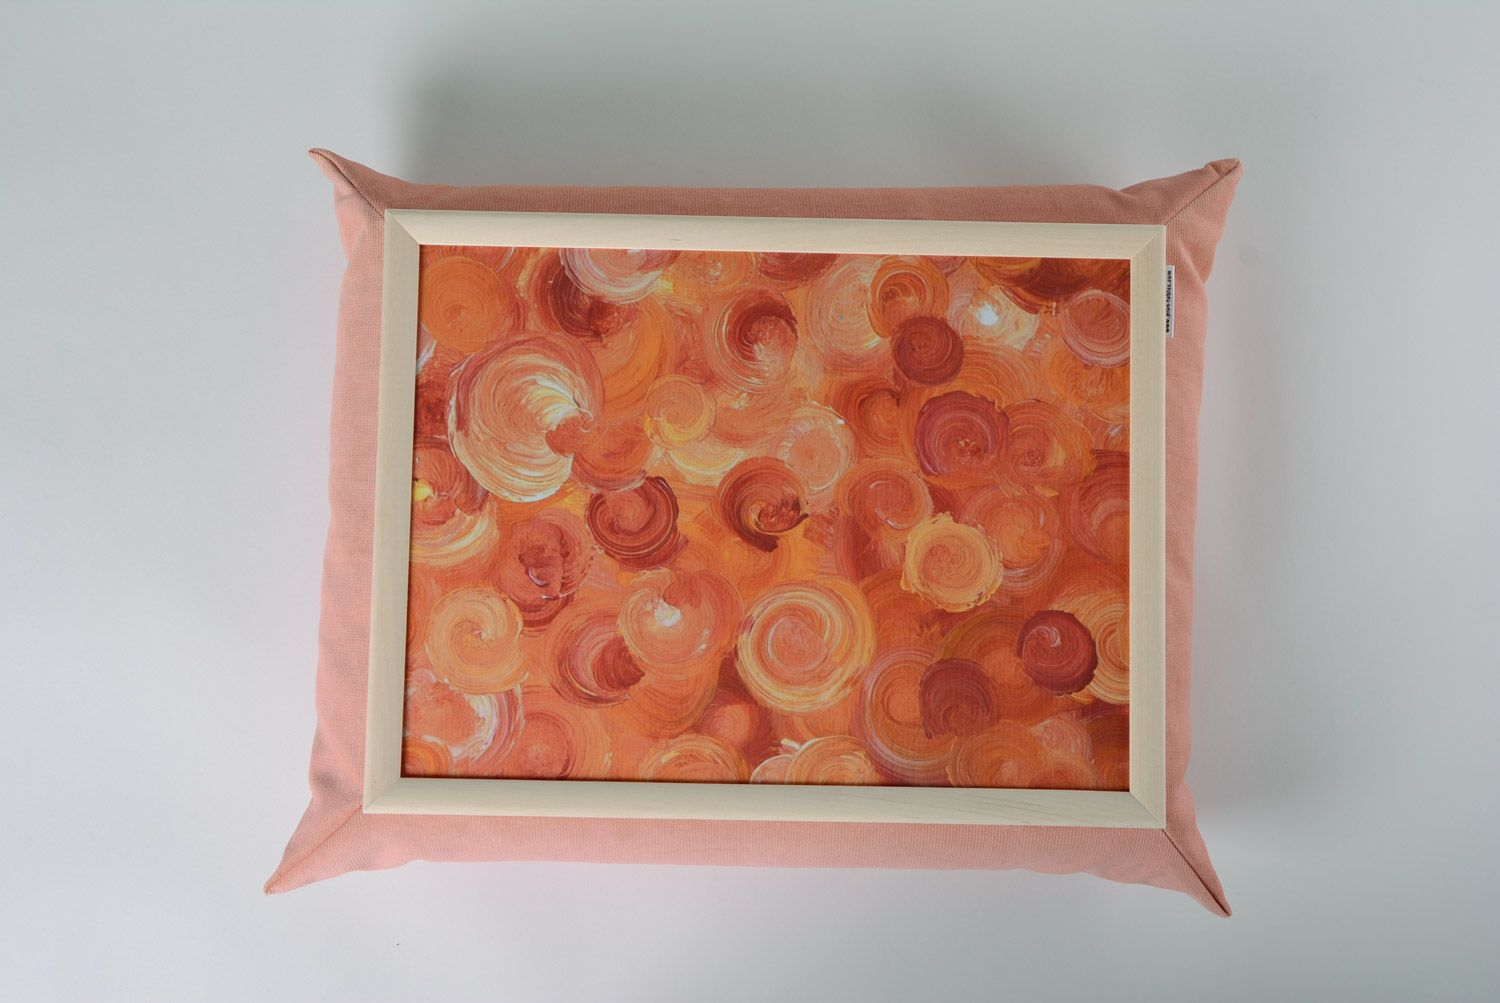 hangers and Coat Racks Handmade decorative tray cushion in gentle pink color with picture home decor - MADEheart.com